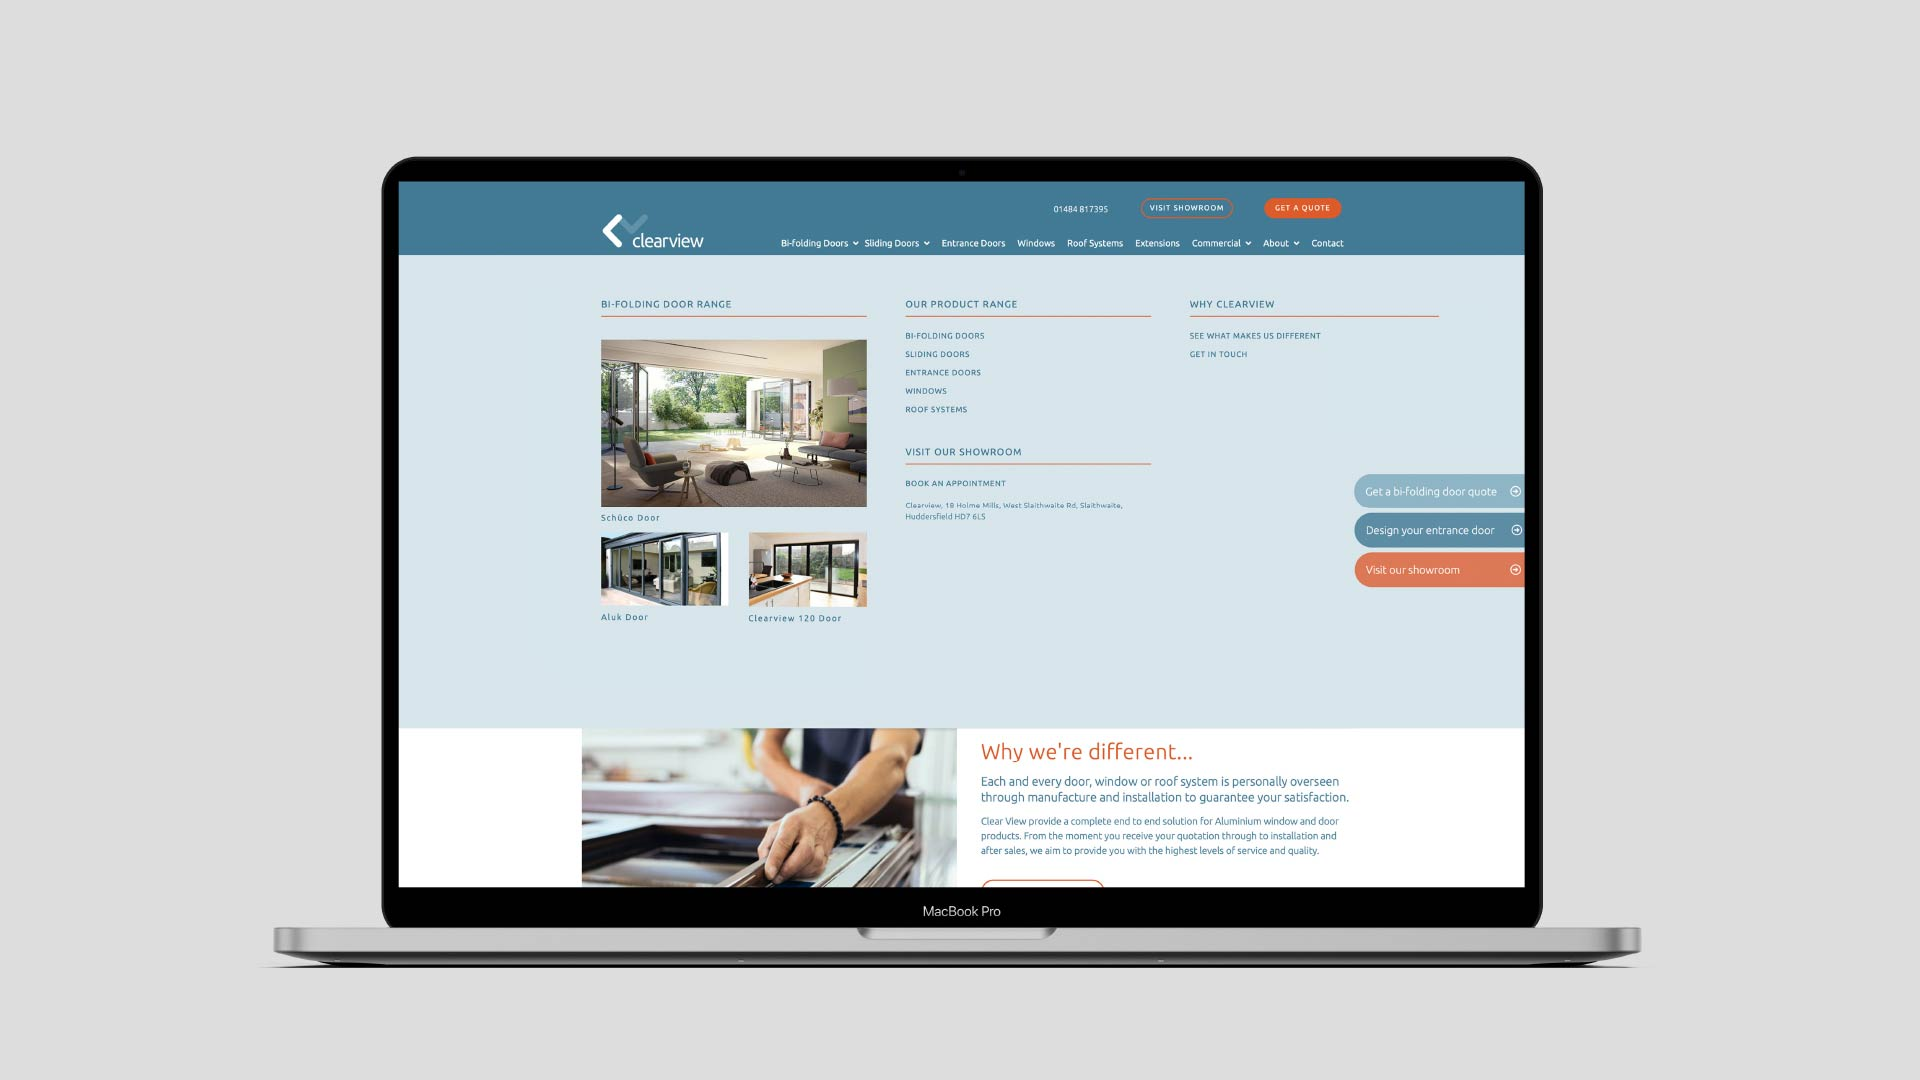 Clearview website and messaging